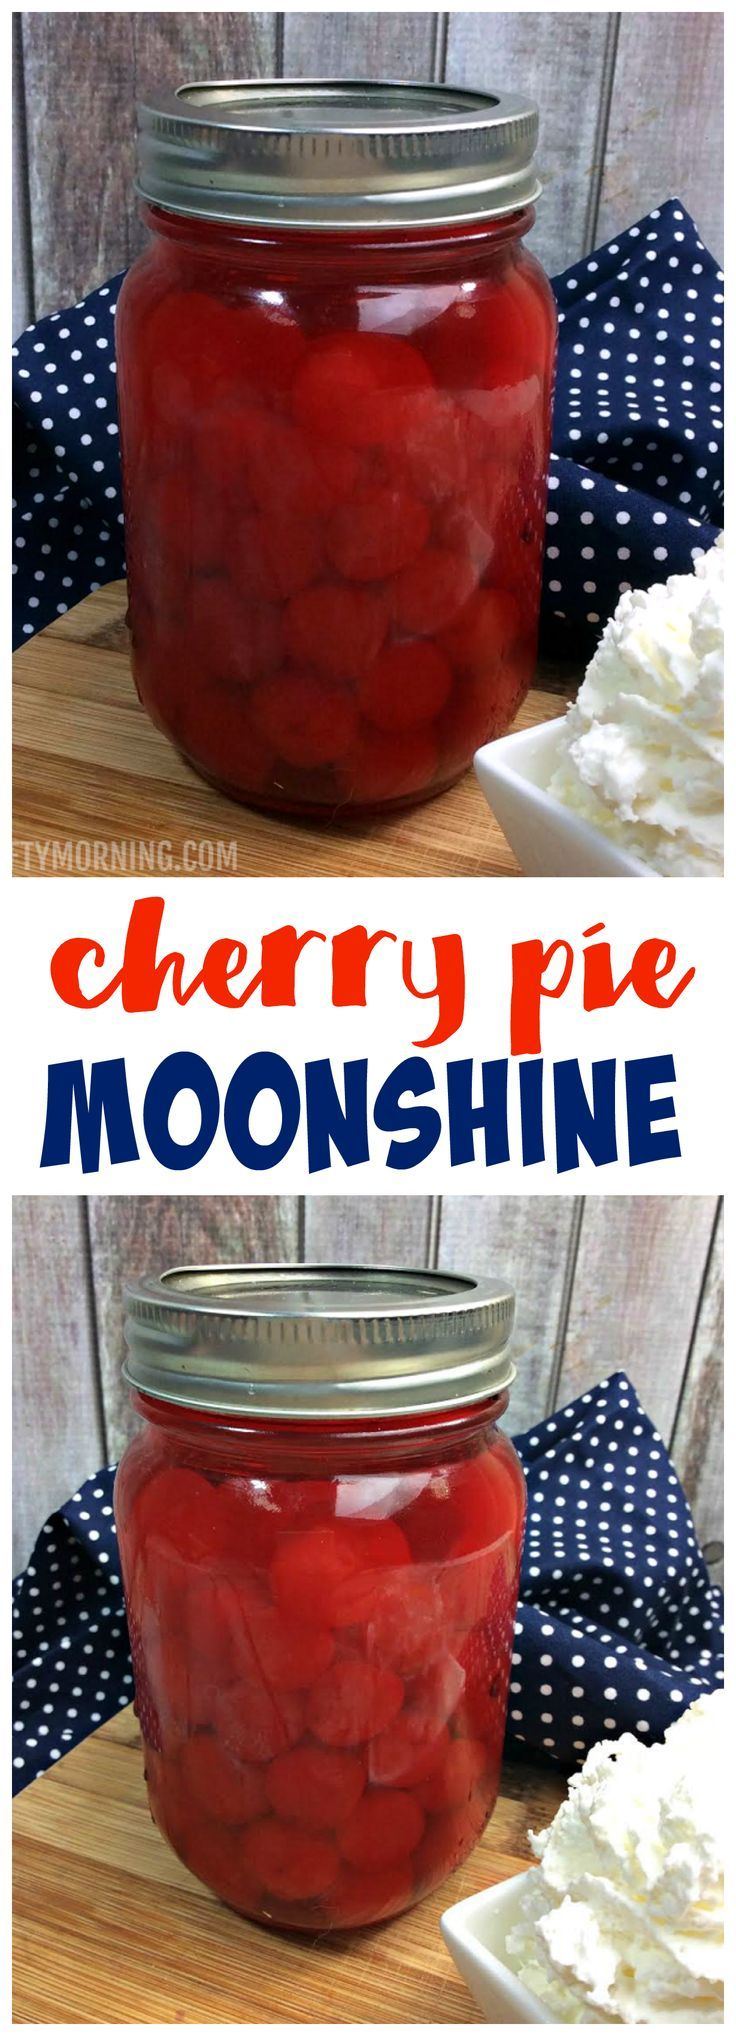 YUM!! Cherry pie moonshine recipe to make! Fun alcoholic drink for the summer or 4th of july.